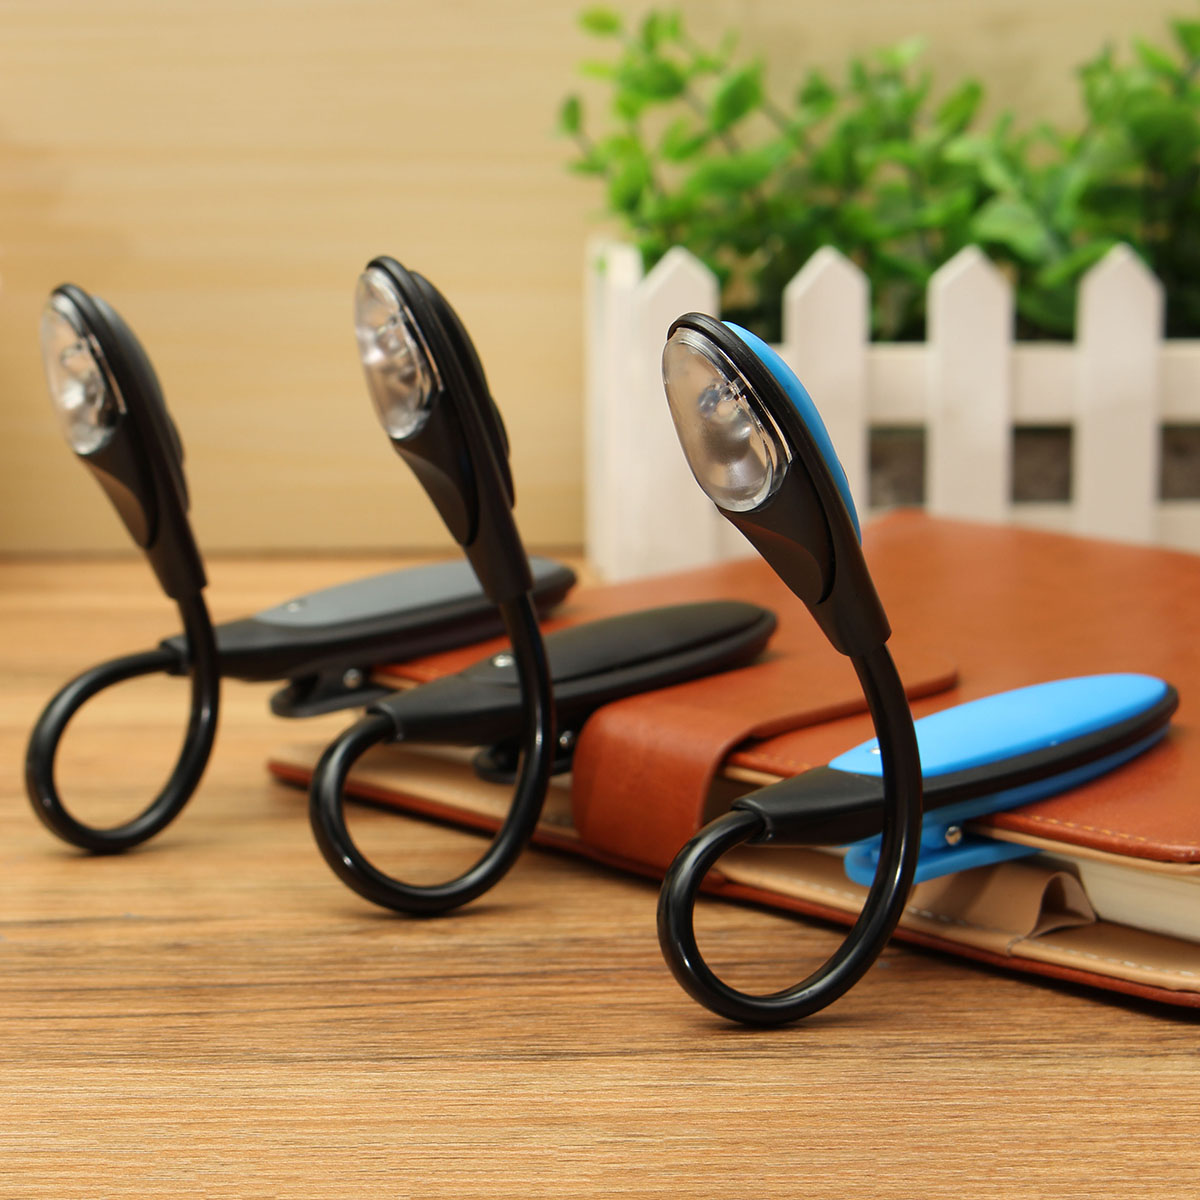 Mini LED Book Light Clip-On Flexible Bright Lamp Light Book Reading Lamp For Travel Bedroom Book E-Book Reader Gifts